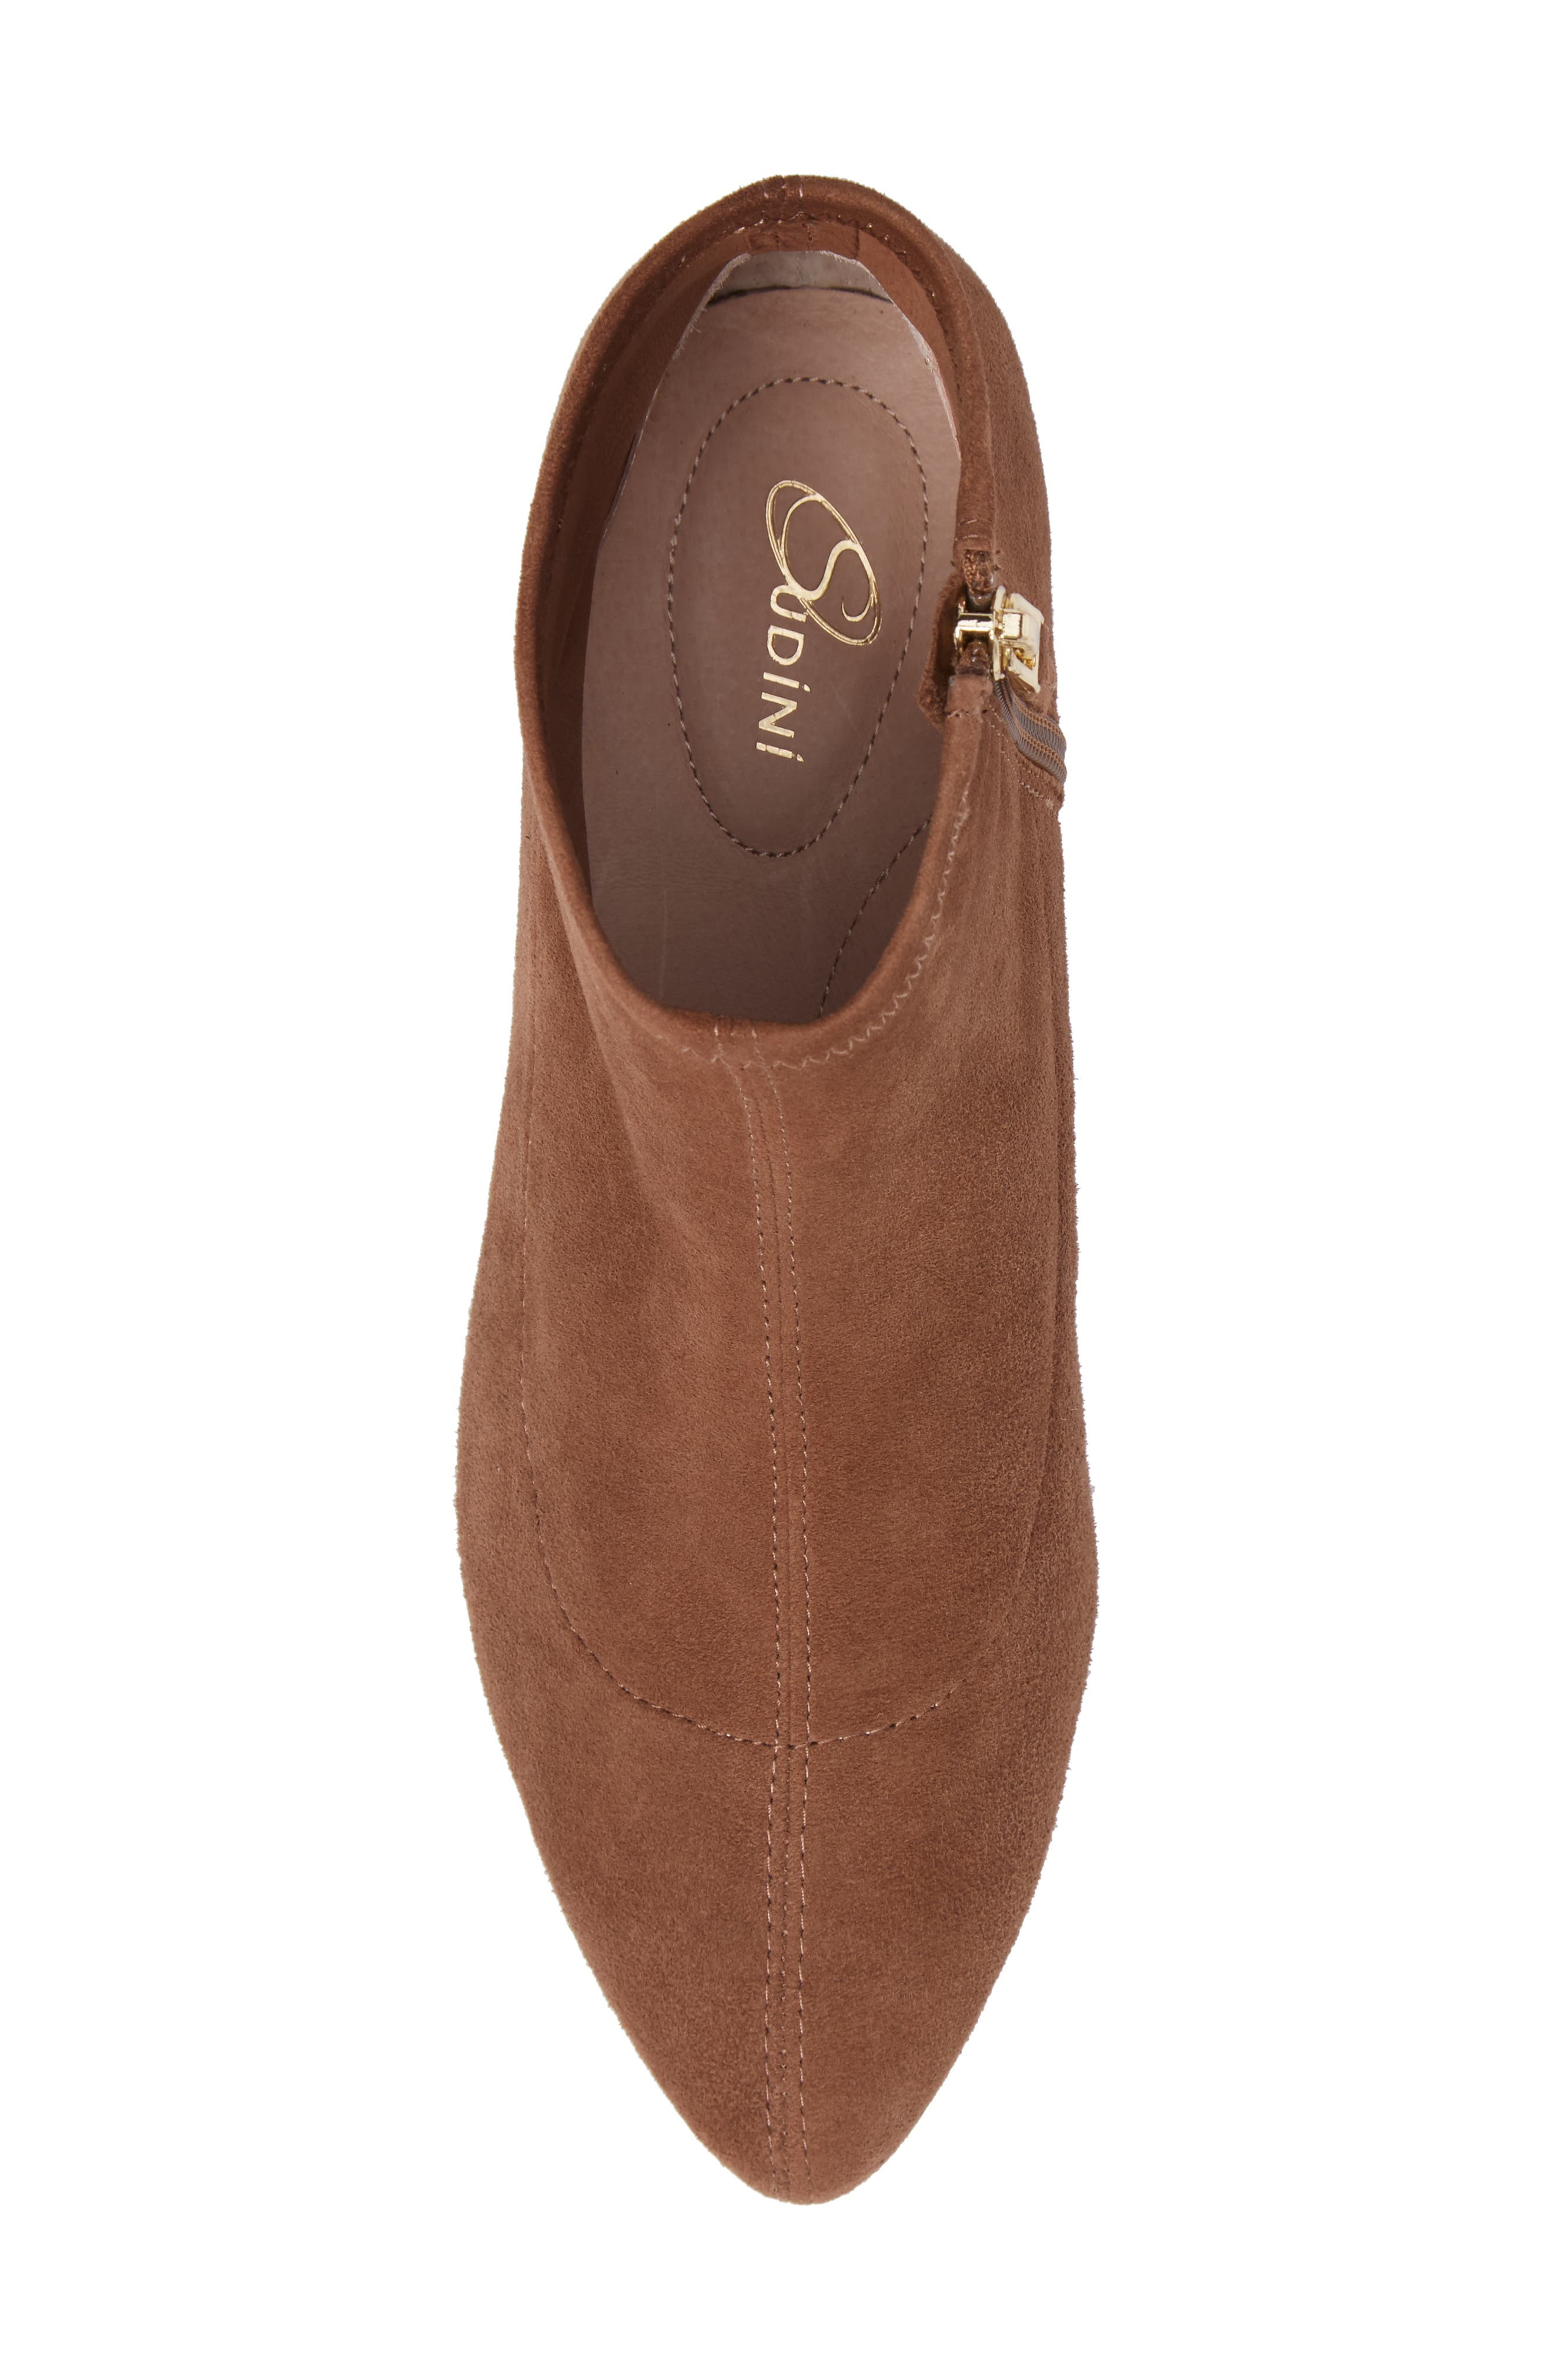 SUDINI, Aletta Bootie, Alternate thumbnail 5, color, TOBACCO SUEDE